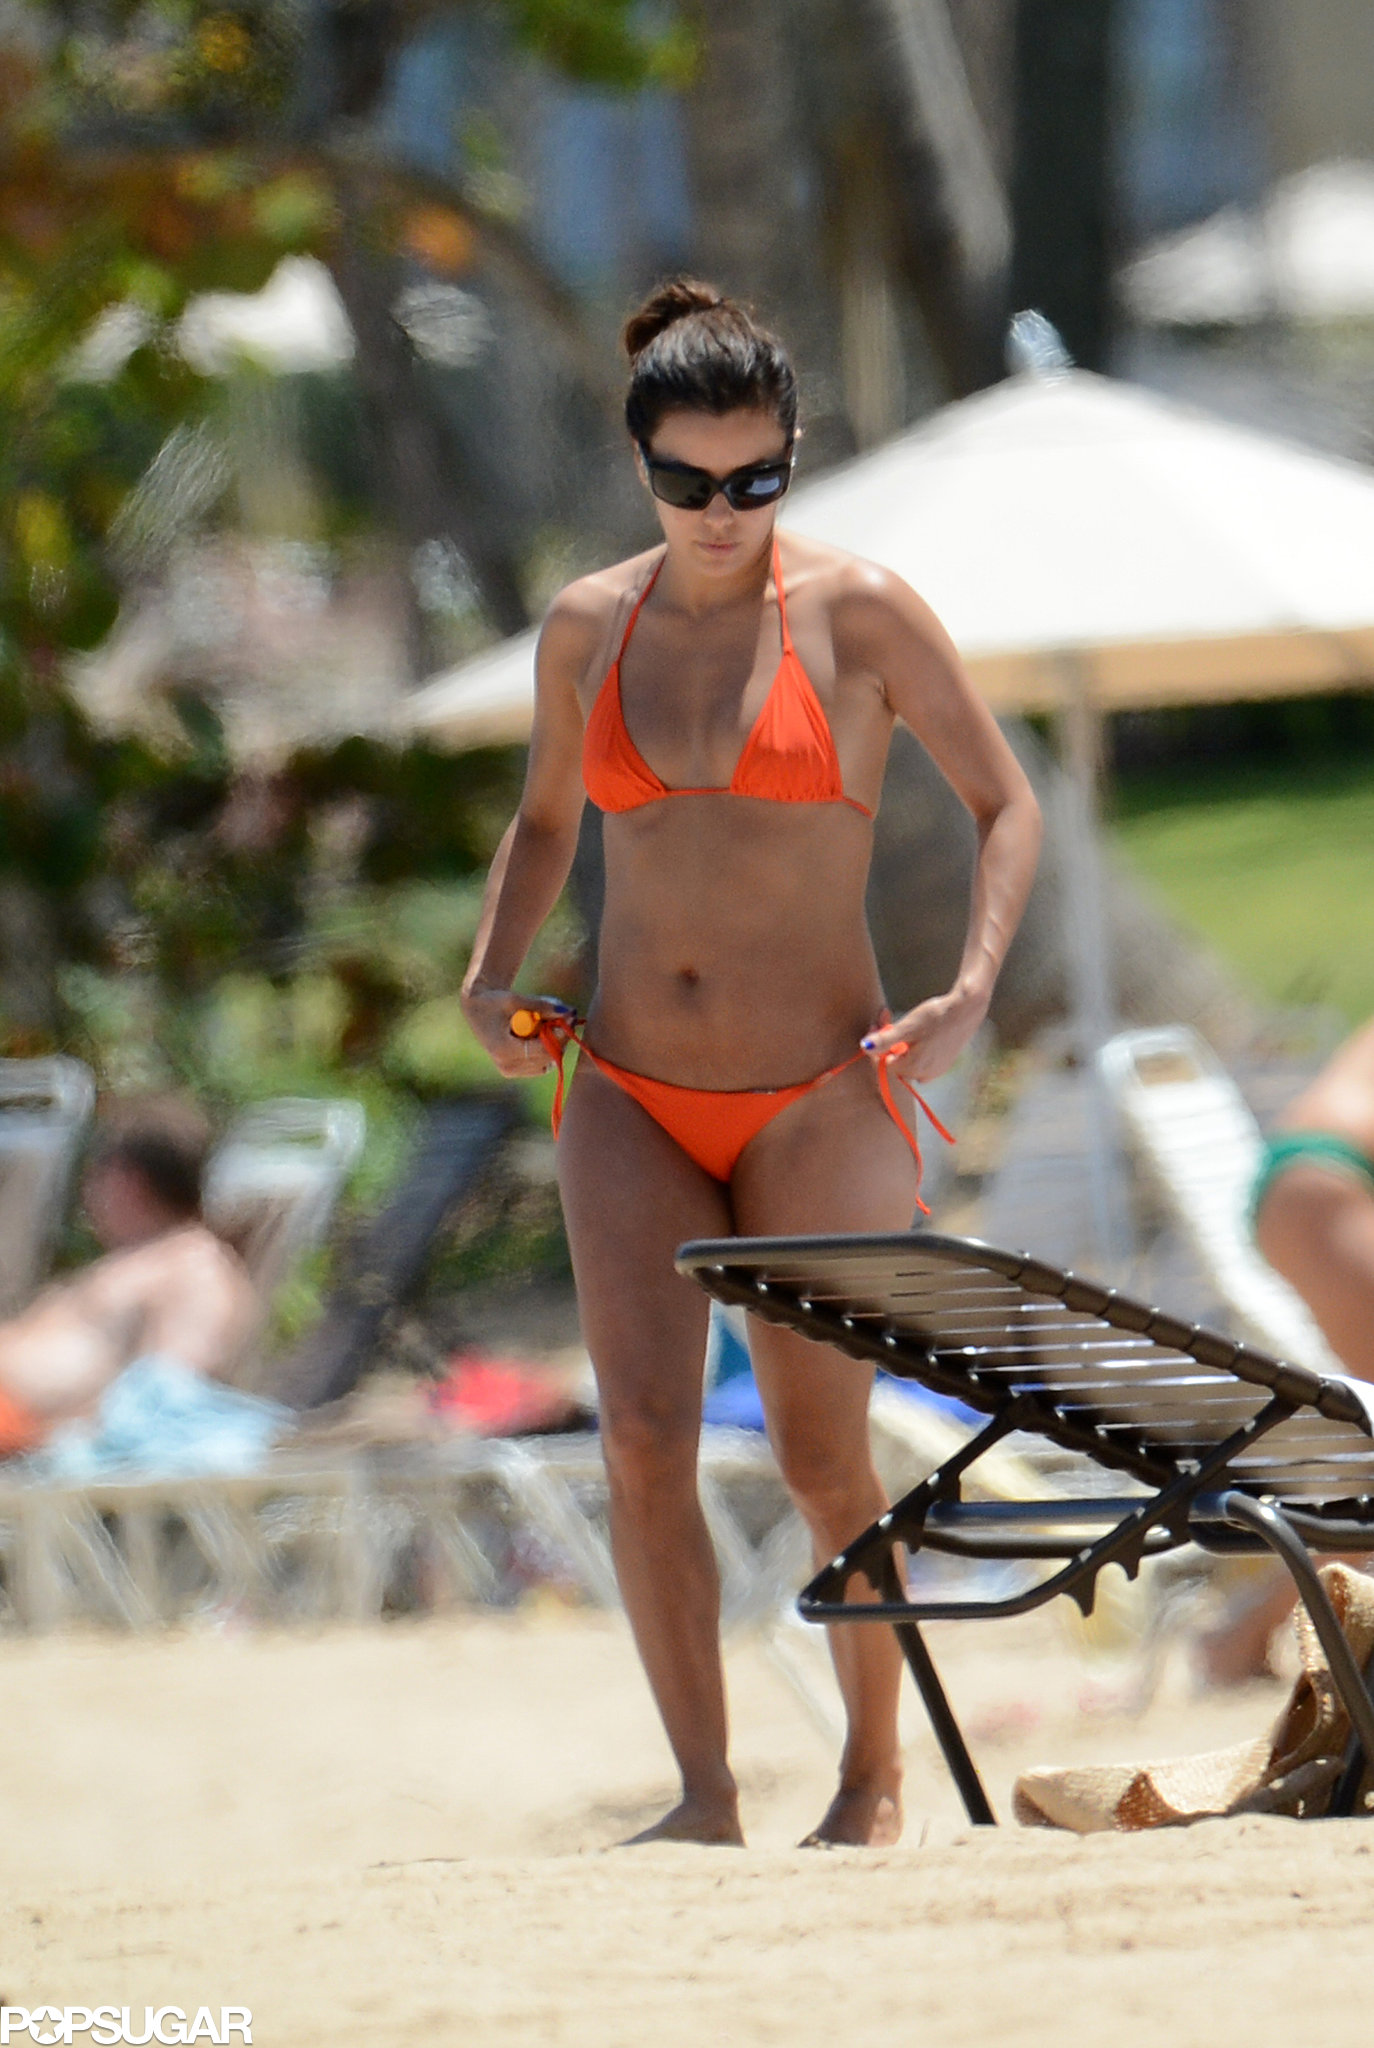 Eva Longoria worked her bright orange bikini in Puerto Rico in April 2013.